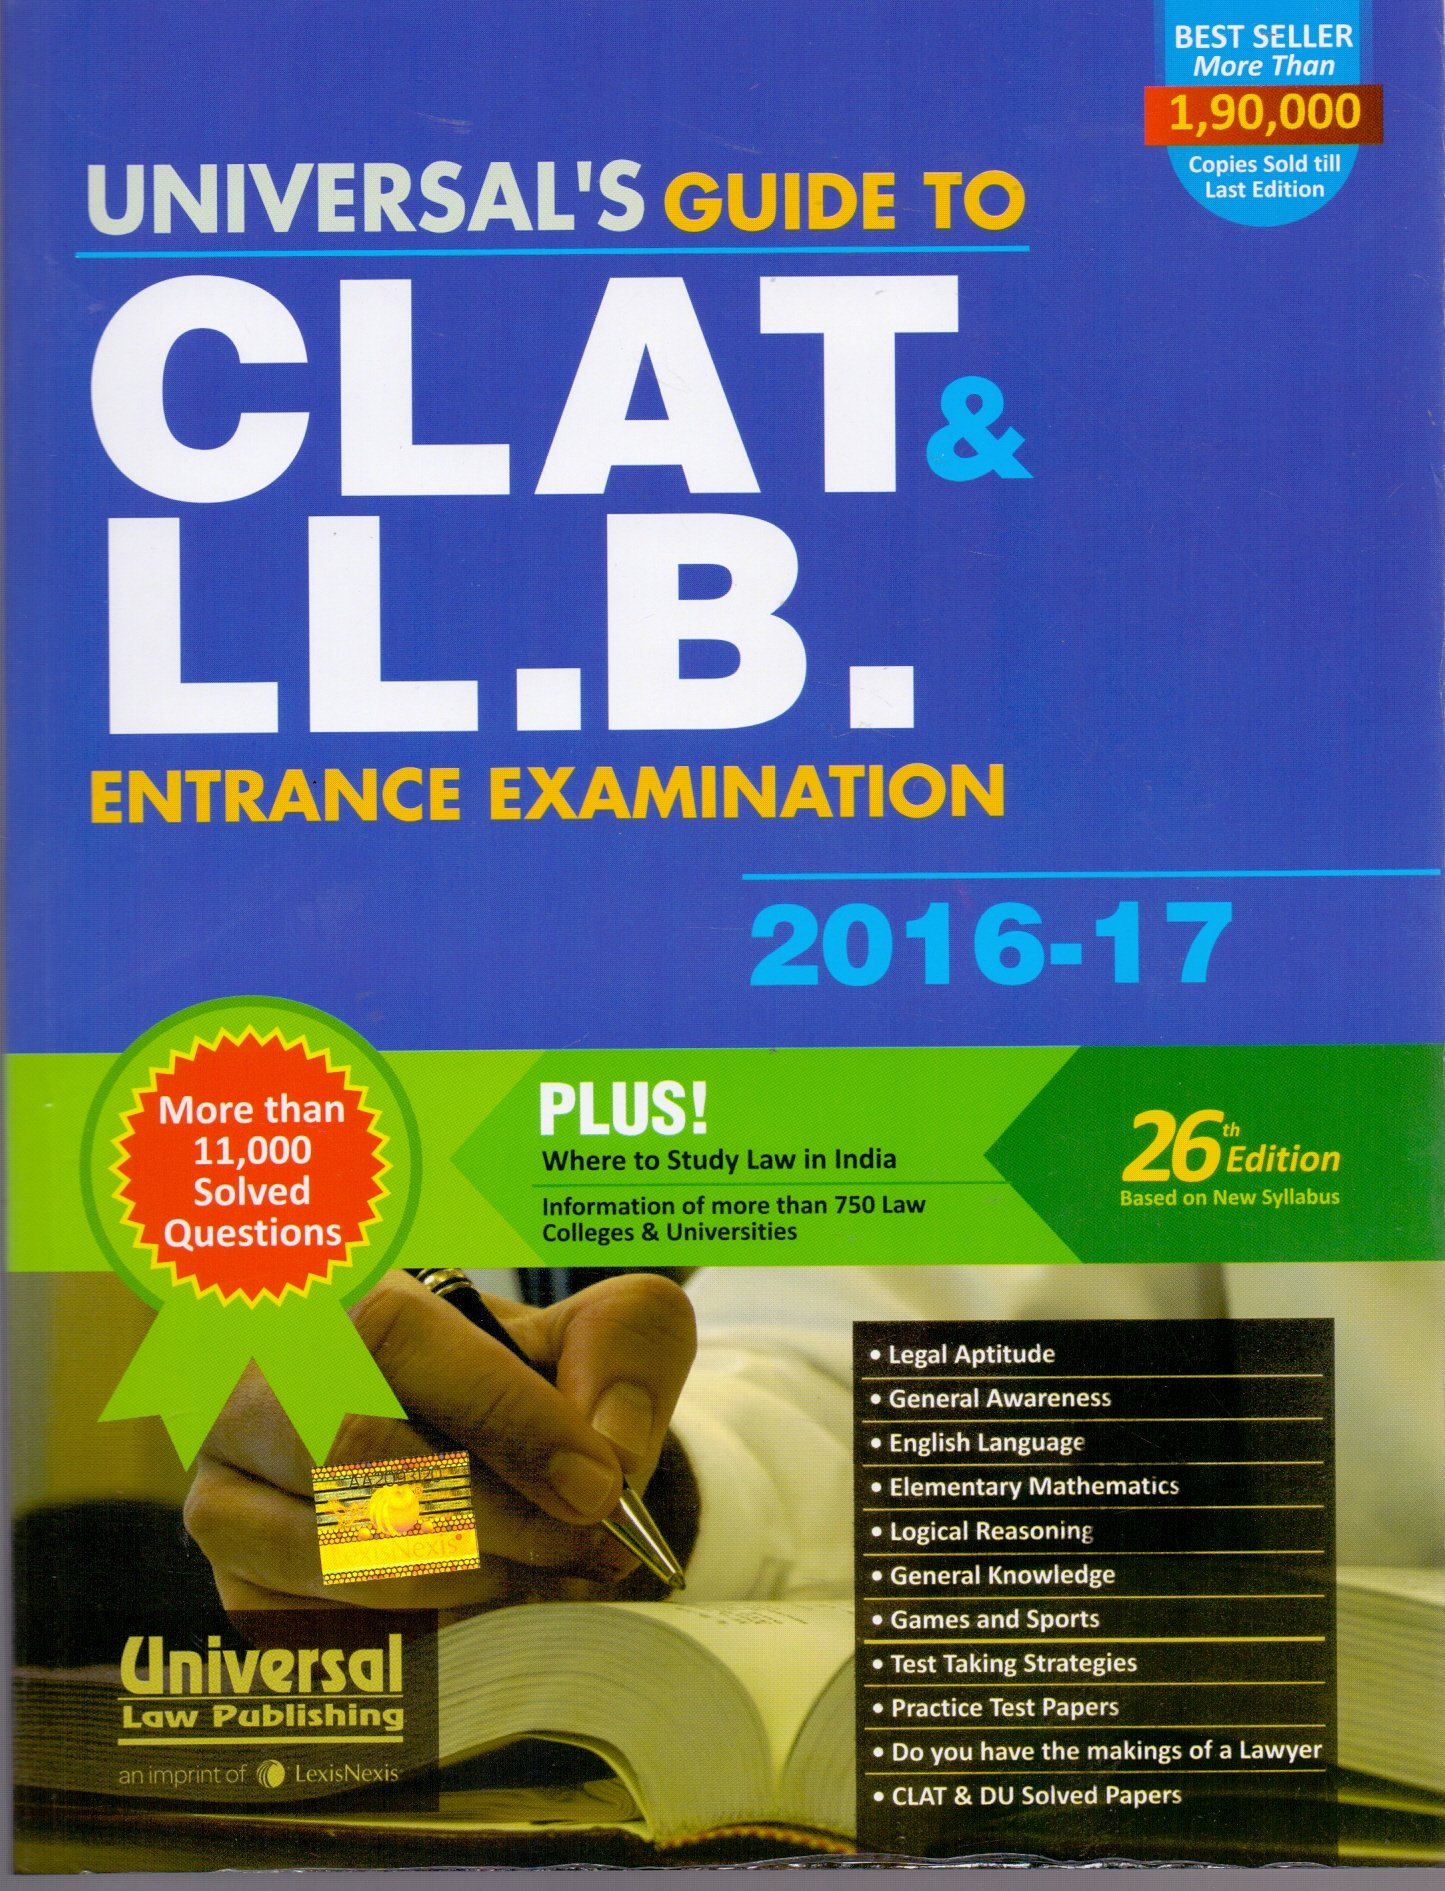 Guide to CLAT & LL.B. Entrance Examination 2016-17: Amazon.in: Universal's:  Books